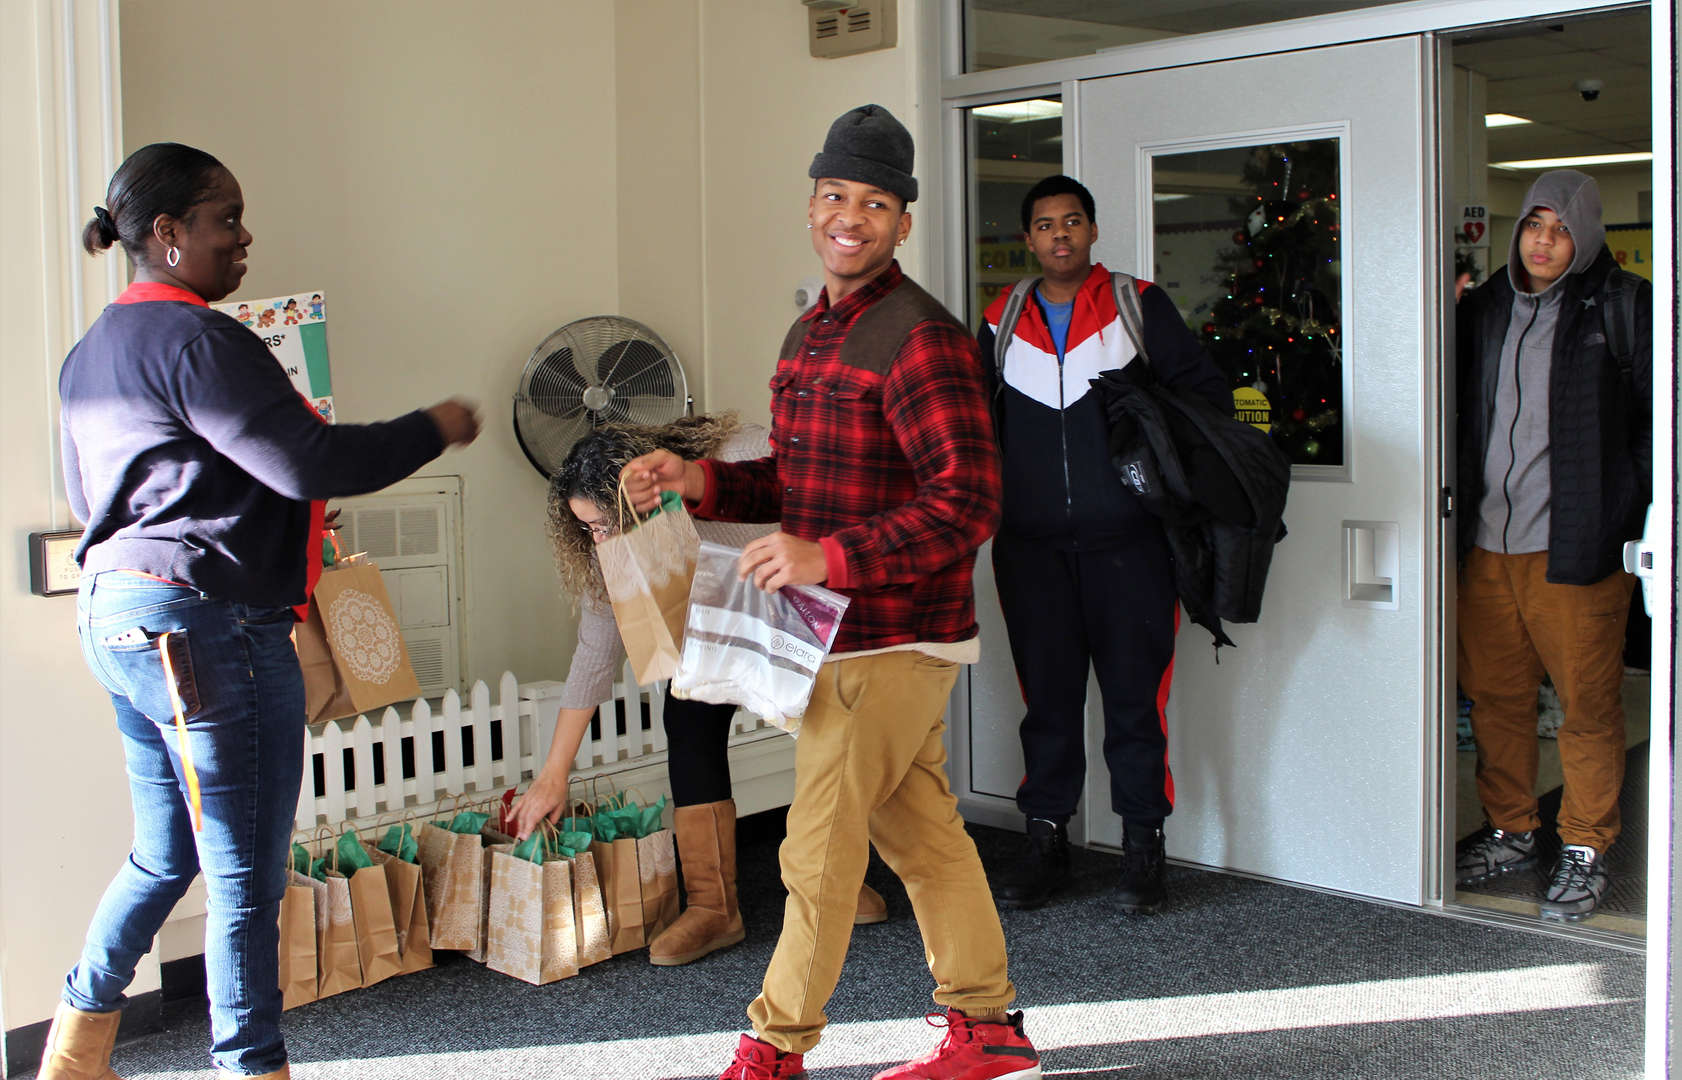 A male student receives a gift bag as he leaves Rye Lake for the day.